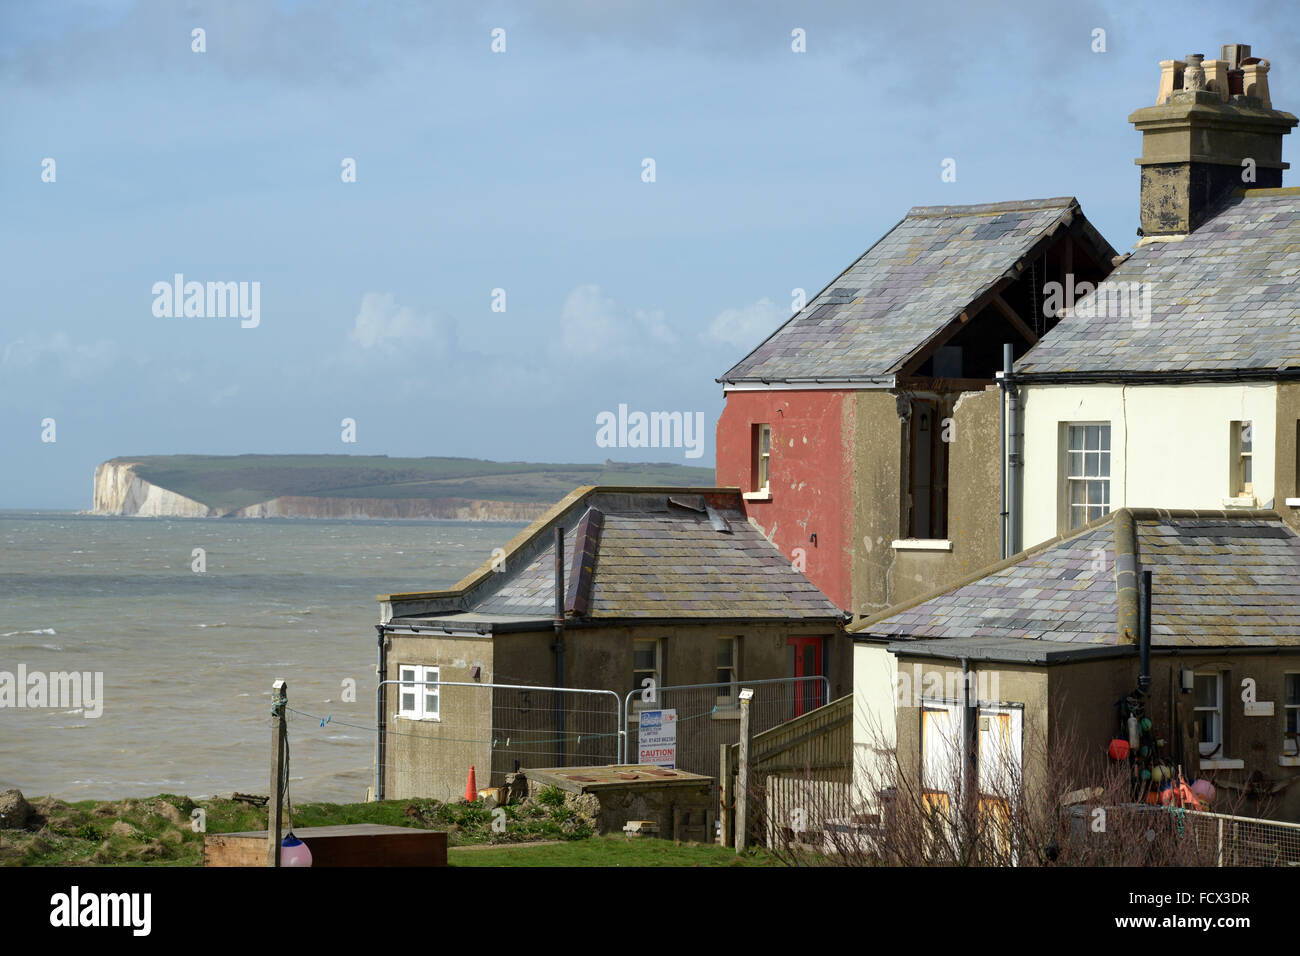 Demolition of Coastguard cottage at Birlng Gap, East Sussex, UK after winter storms eroded the chalk cliffs causing - Stock Image